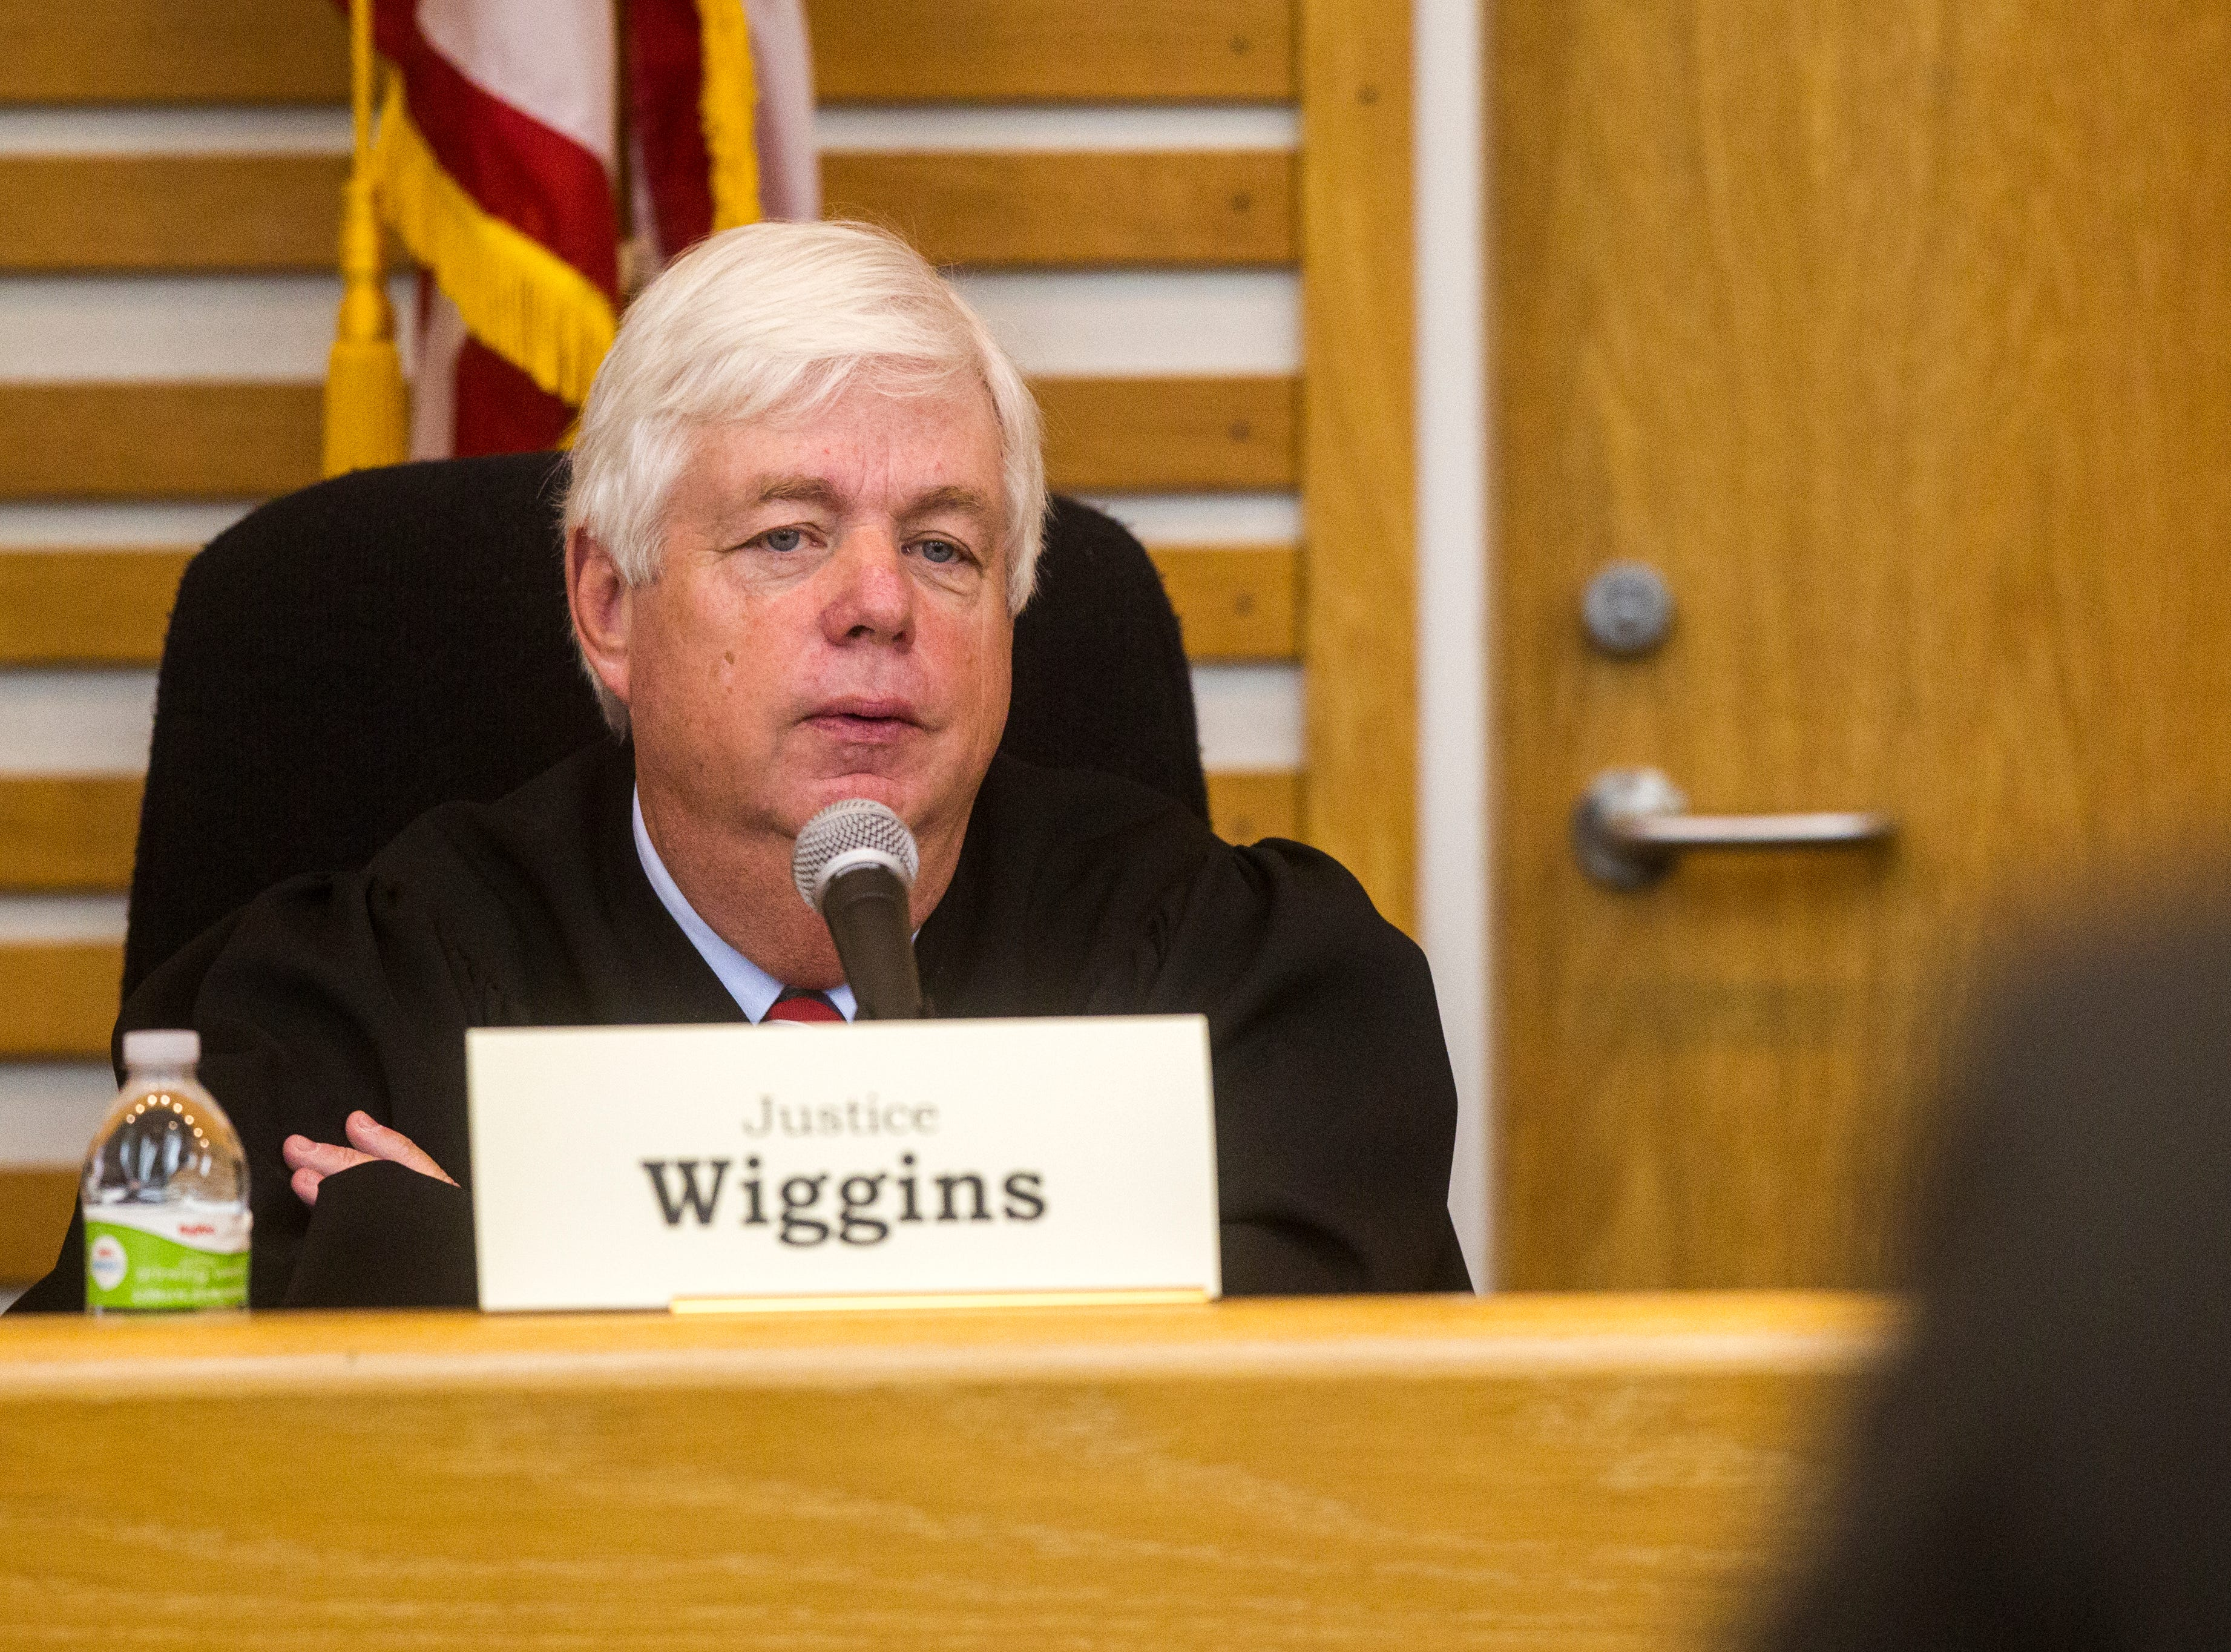 Justice David Wiggins of the Iowa Supreme Court speaks while oral arguments are presented on Friday, Sept. 7, 2018, at Levitt Auditorium inside the Boyd Law Building on the University of Iowa campus in Iowa City.